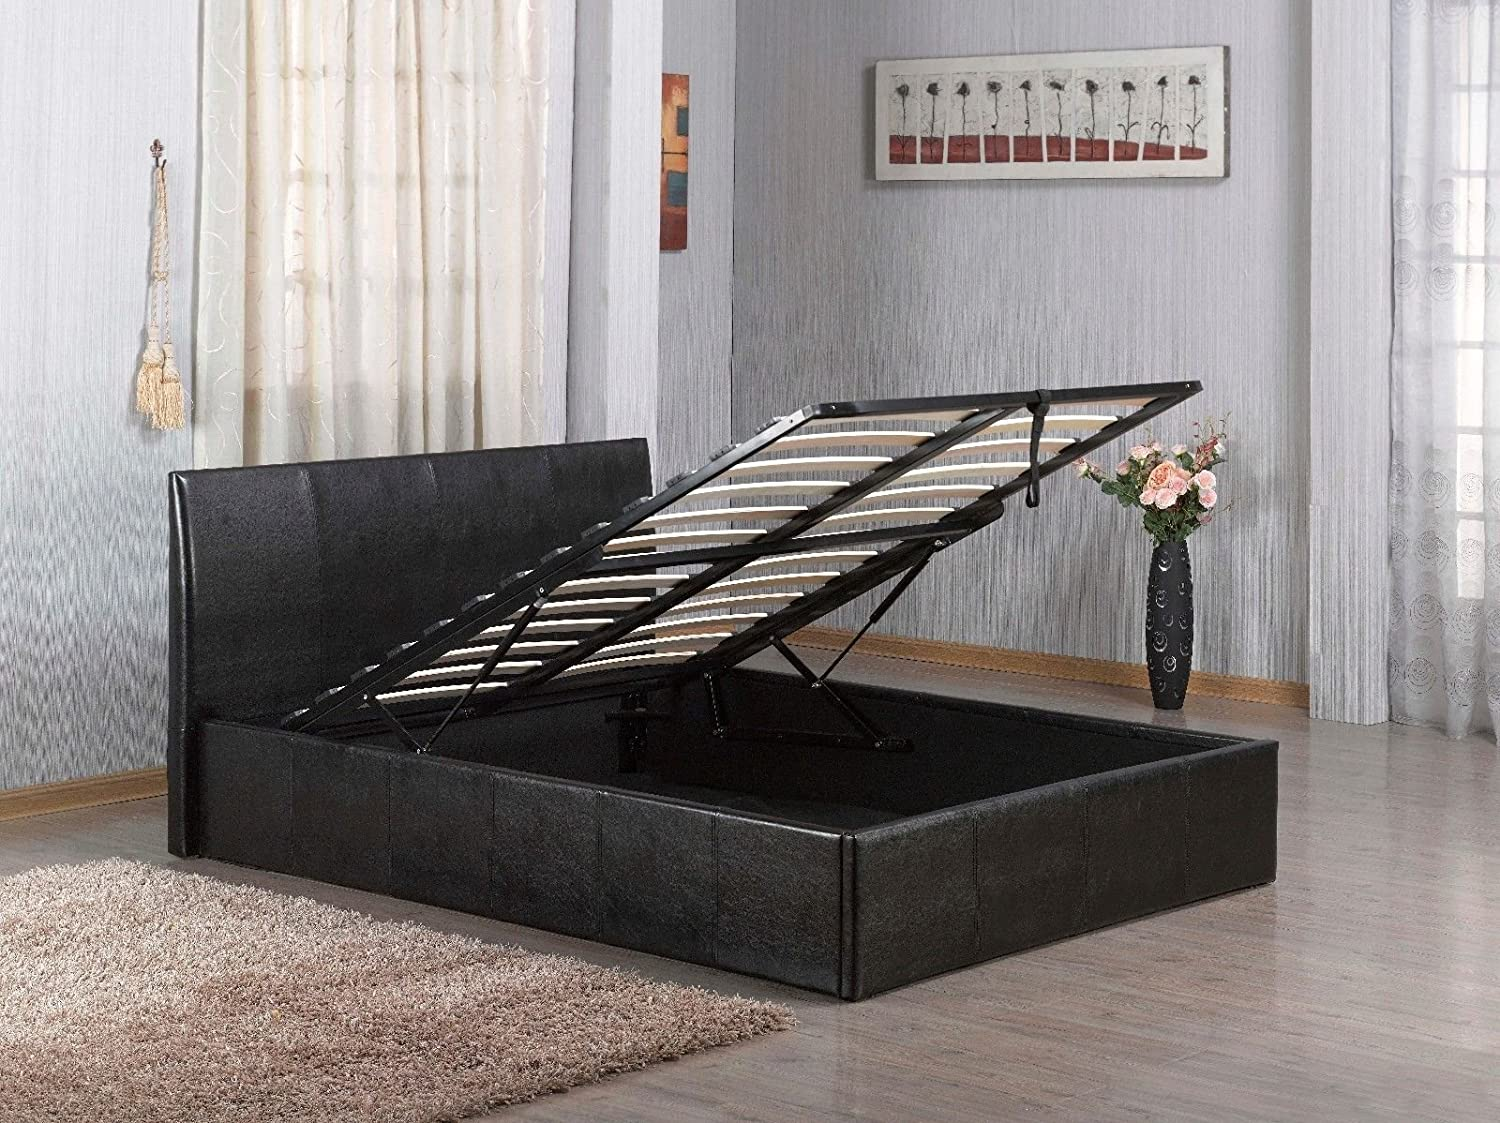 f2b96810c892 faux leather Storage Ottoman Gas Lift Up bed frame's in Black, Brown,  White, in single,small double,double, king size,super king size, bedframe's  (Black, ...